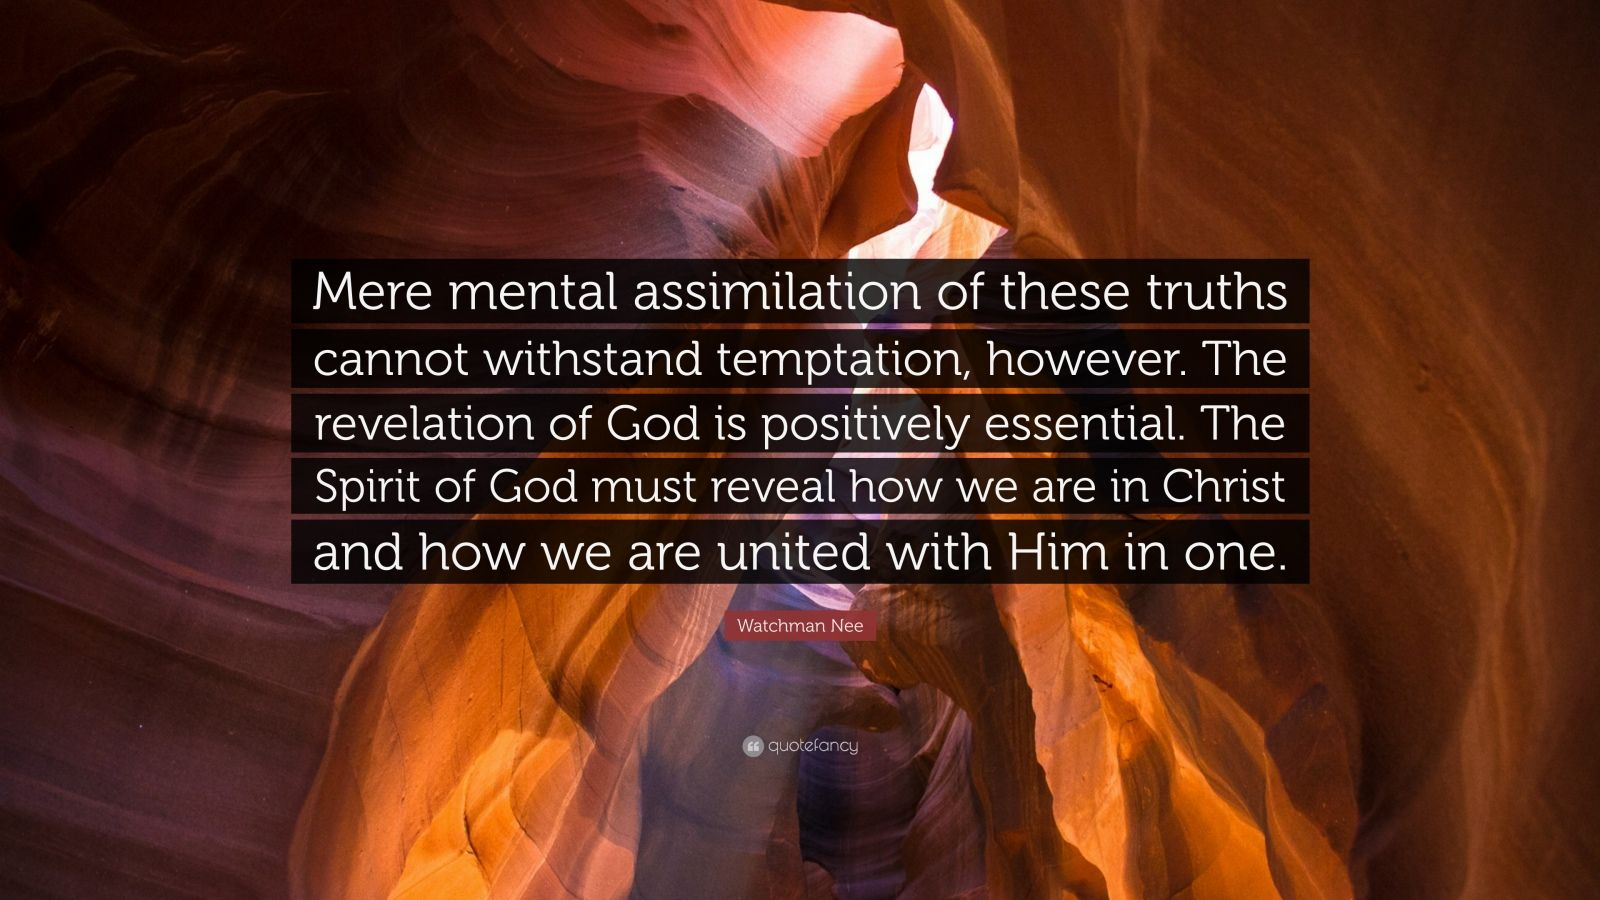 """Watchman Nee Quote: """"Mere mental assimilation of these truths cannot withstand temptation, however. The revelation of God is positively essential. The Spirit of God must reveal how we are in Christ and how we are united with Him in one."""""""